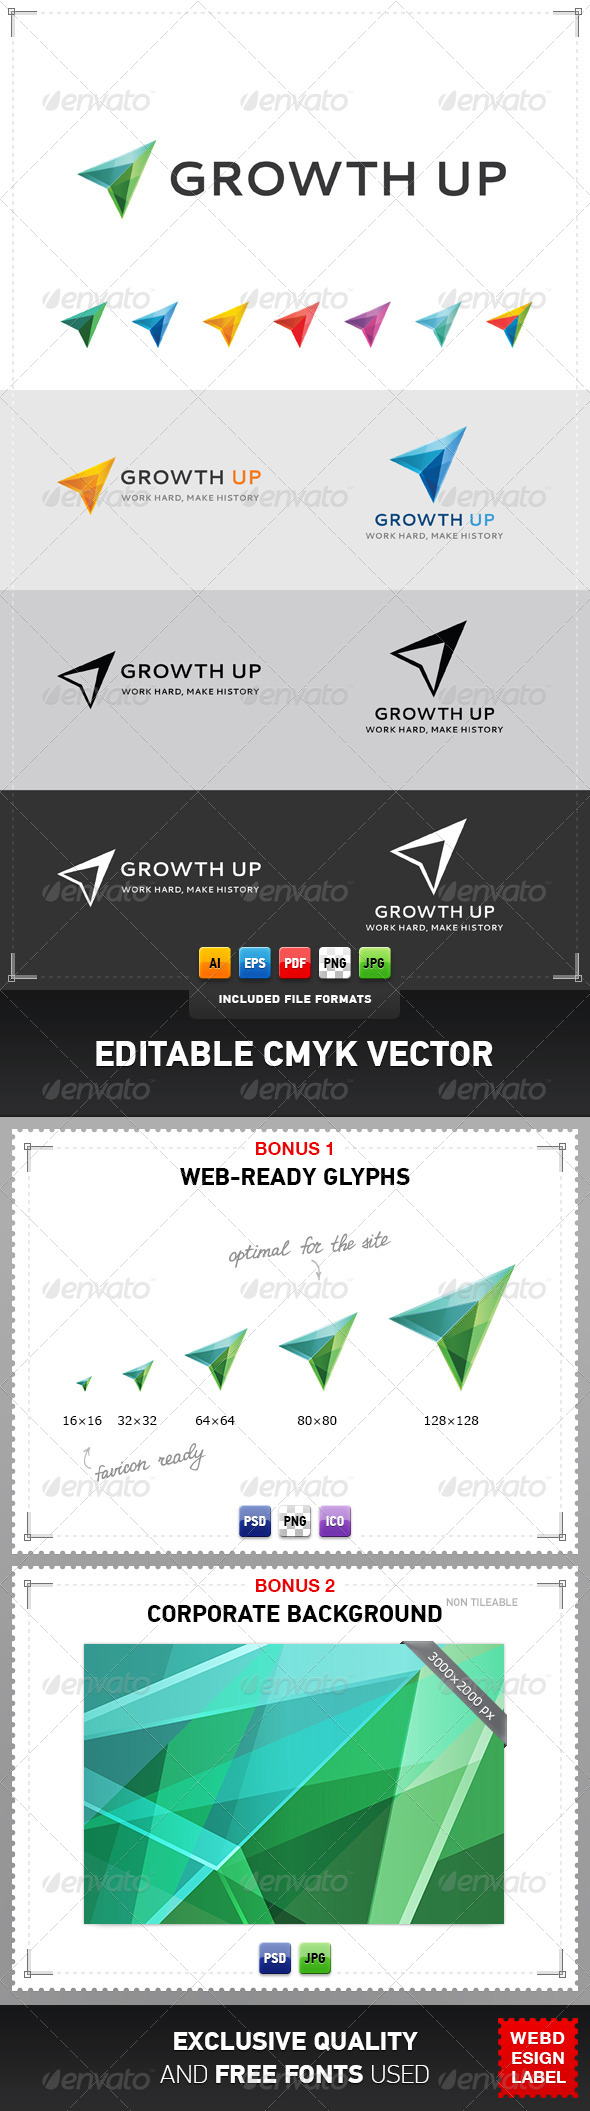 GraphicRiver Growth Up Logo 4322253